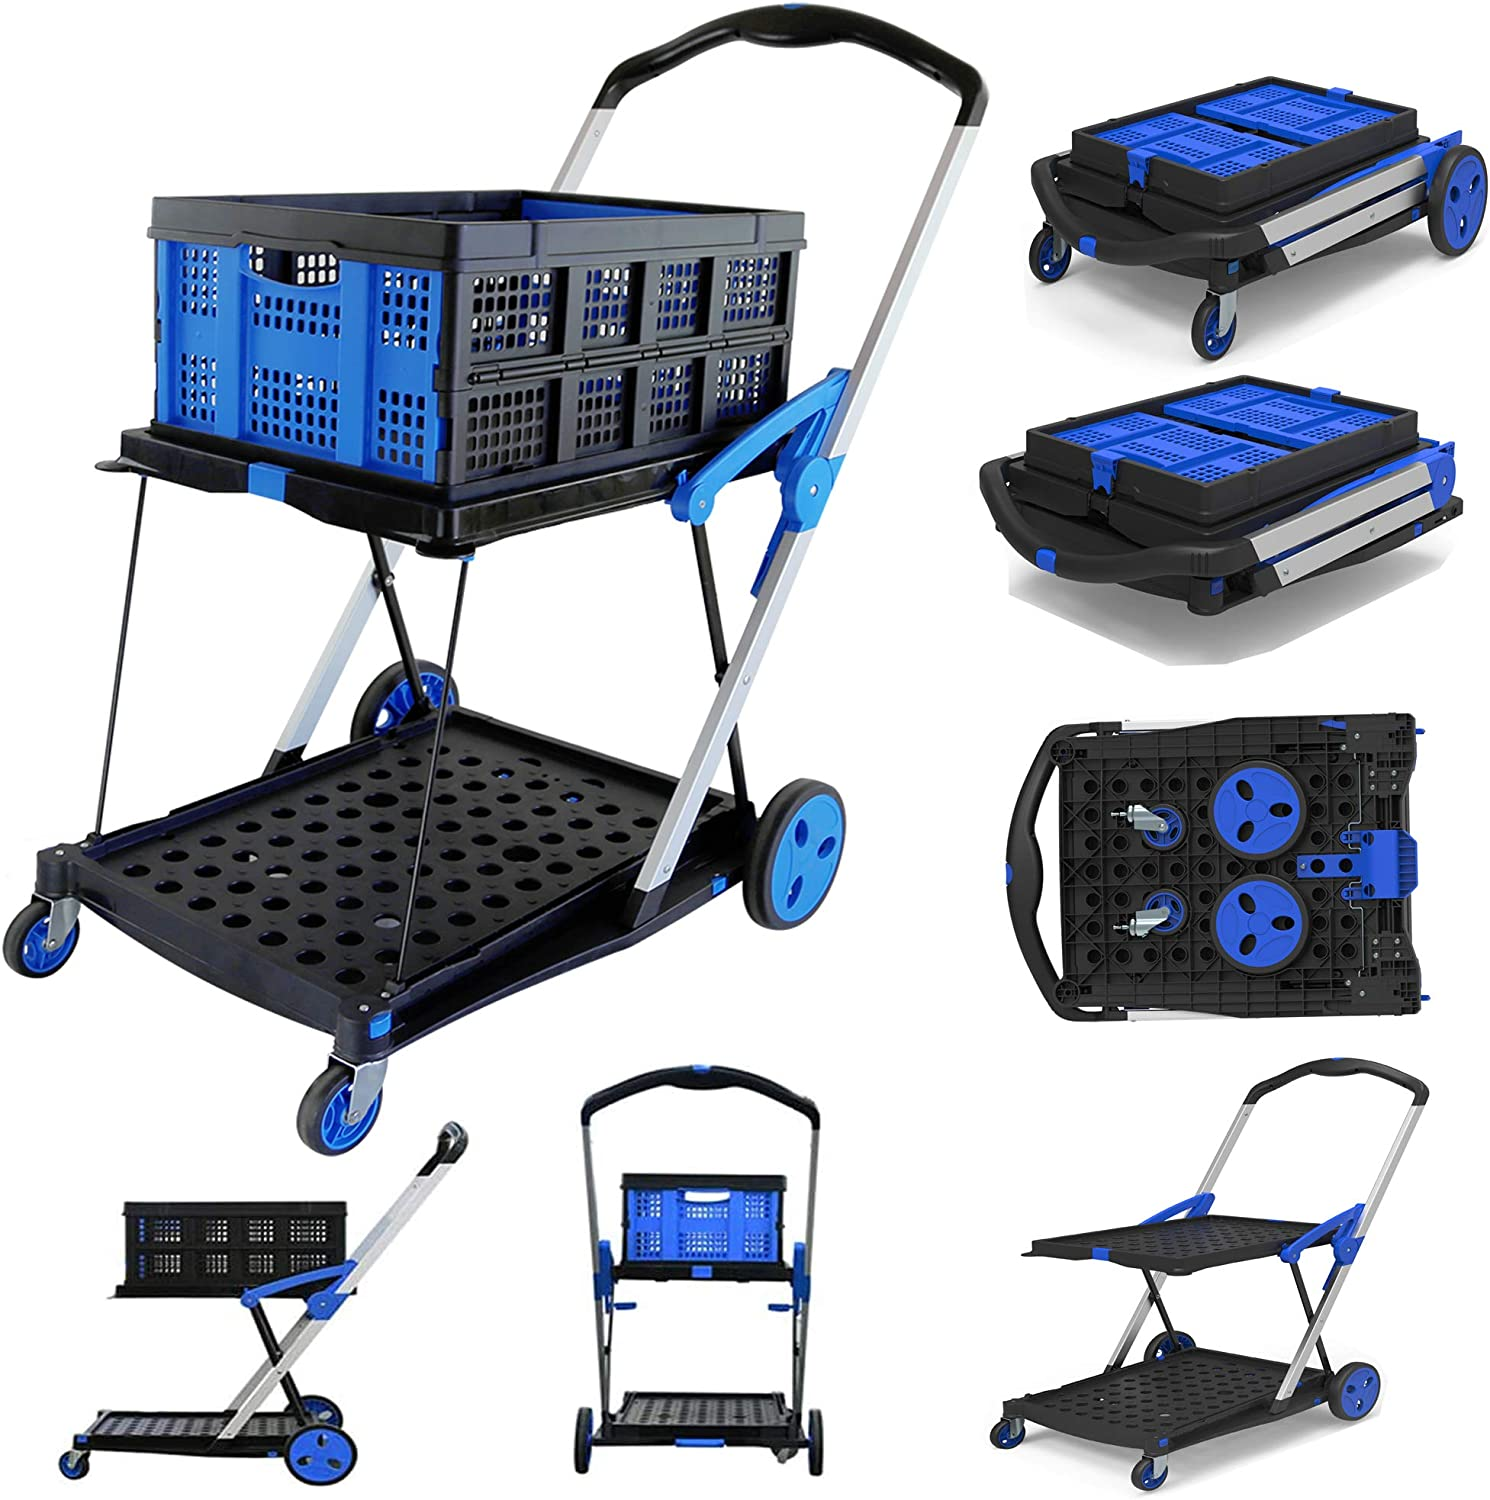 Utility Cart, Folding Shopping Cart with Basket, Double Layer Platform with Stiffener Bar Hand Truck Handle 200lbs, Collapsible Outdoor Wagon, Hand Truck for Warehouse/Office (Folding Cart + Crate)